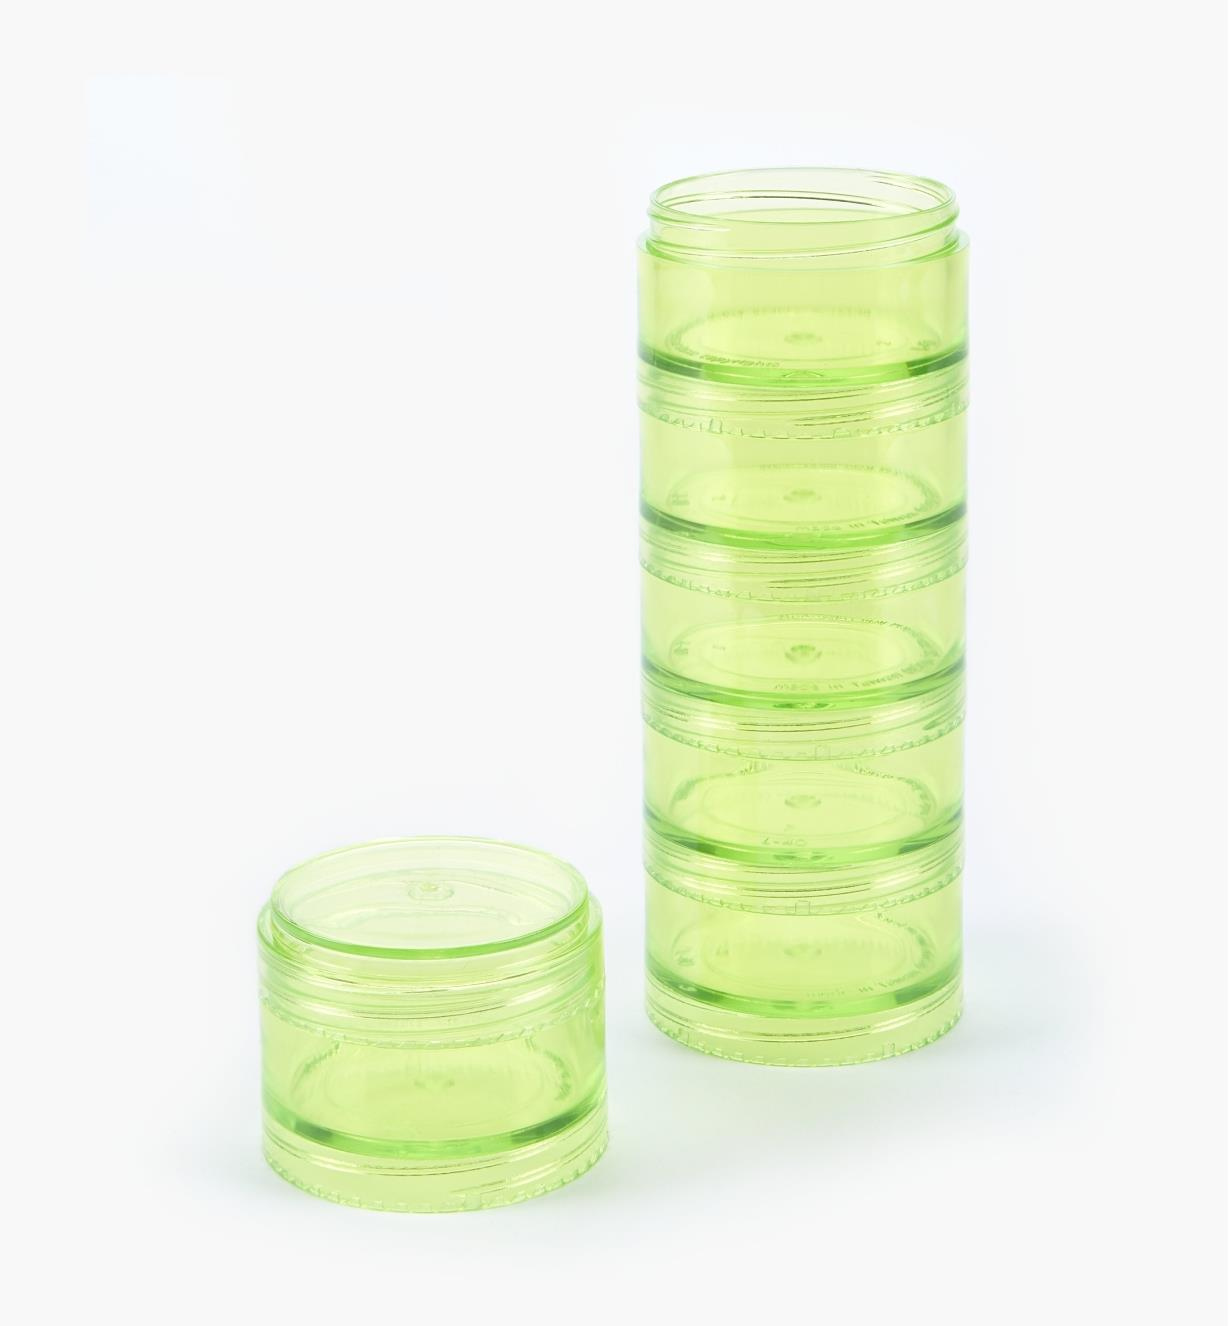 99W0240 - 40mm Jars, stack of 6